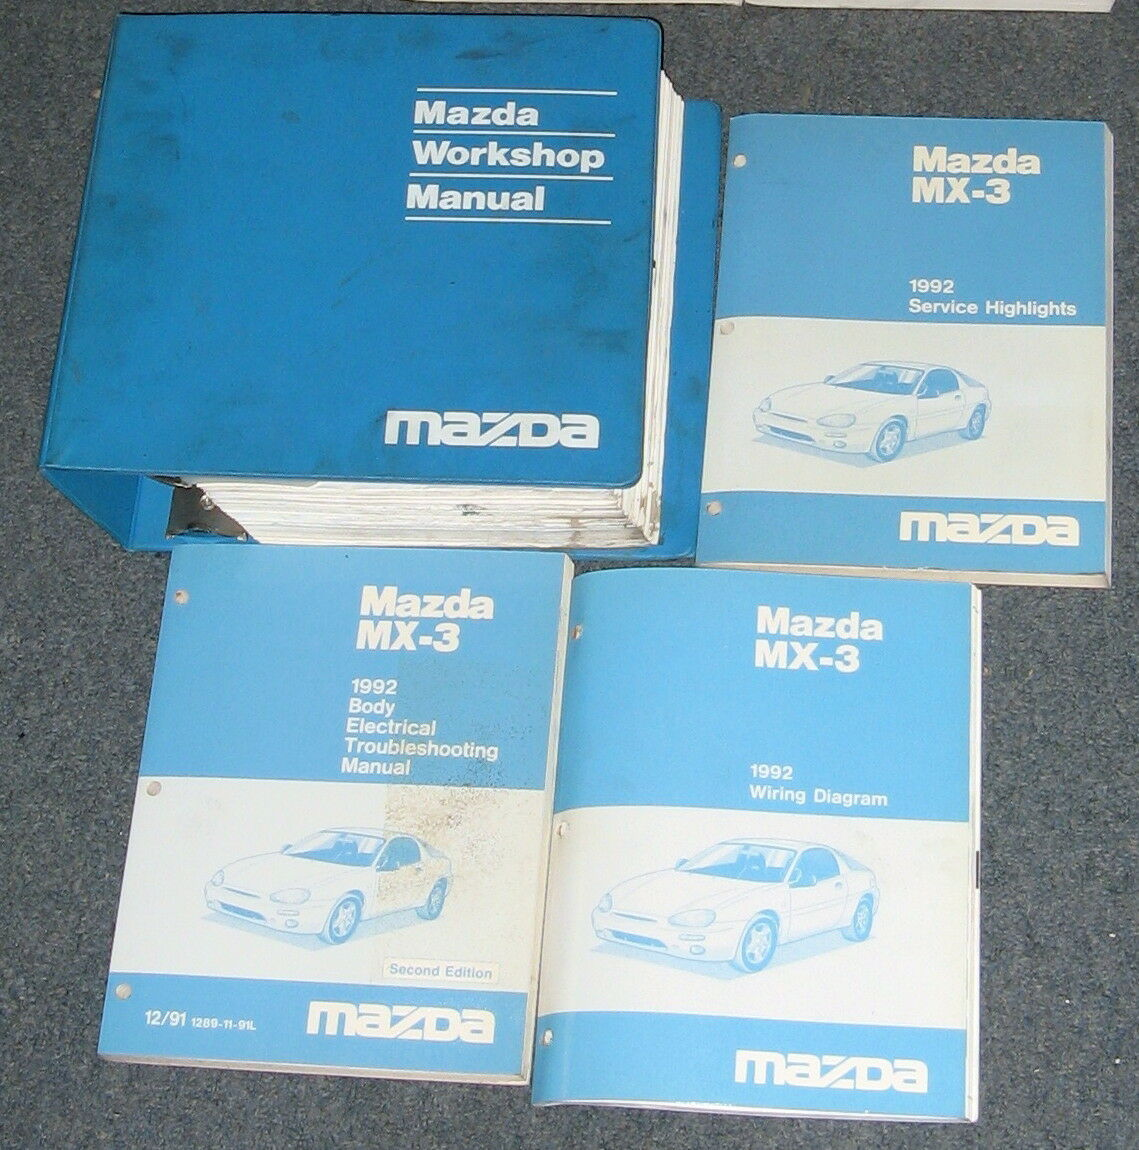 Wiring Diagram Mazda Mx3 1992 Page 3 And Schematics 1993 Engine Mx Service Workshop Manual Set 1 Of 1only Available